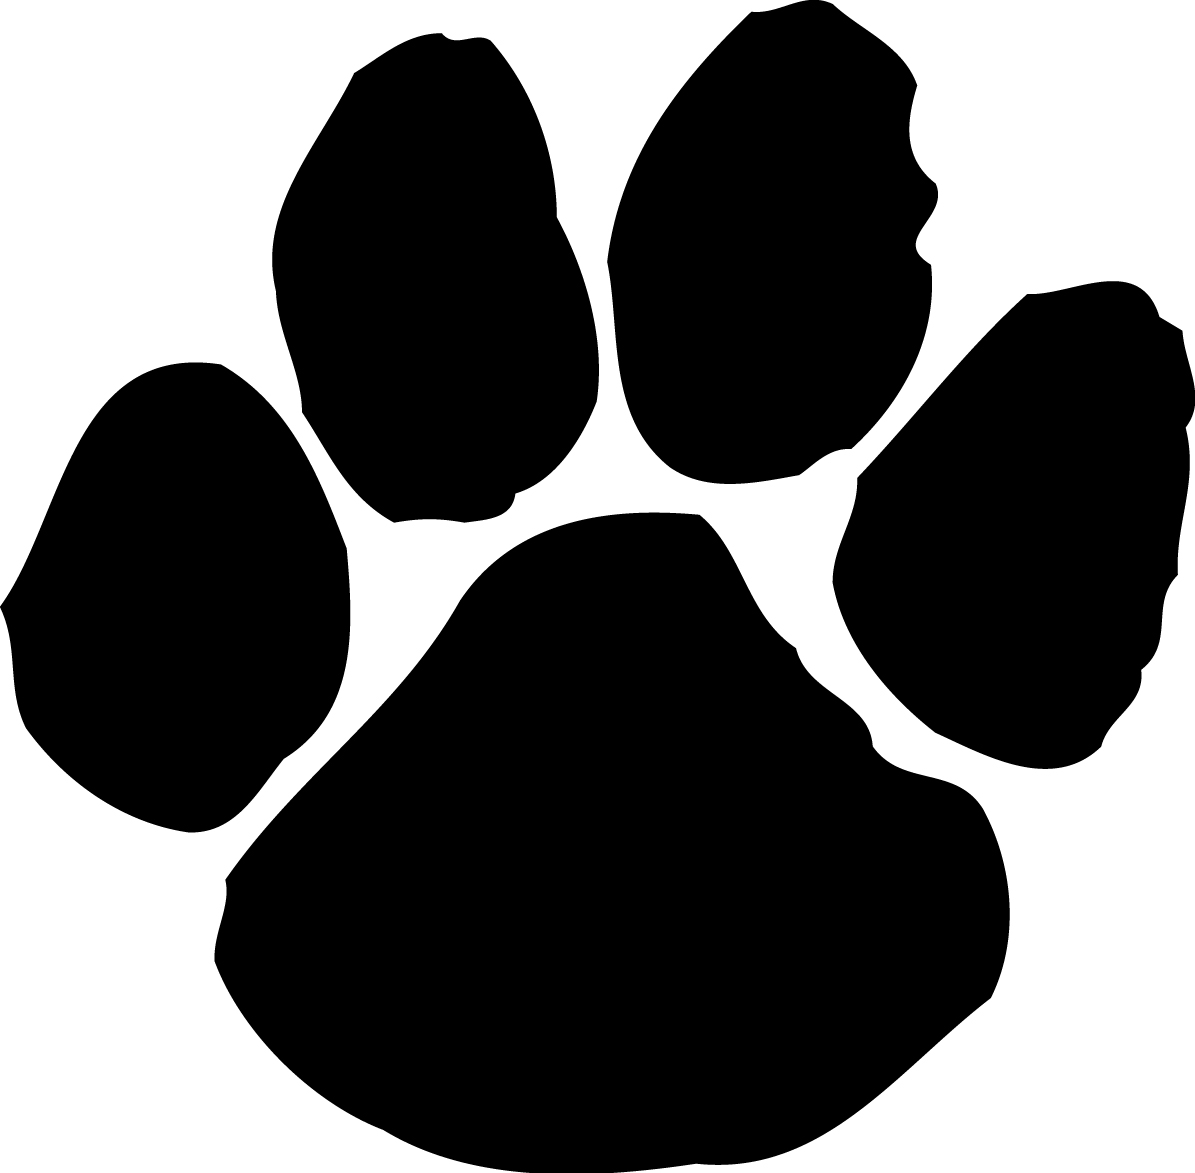 Paw prints clipart 2